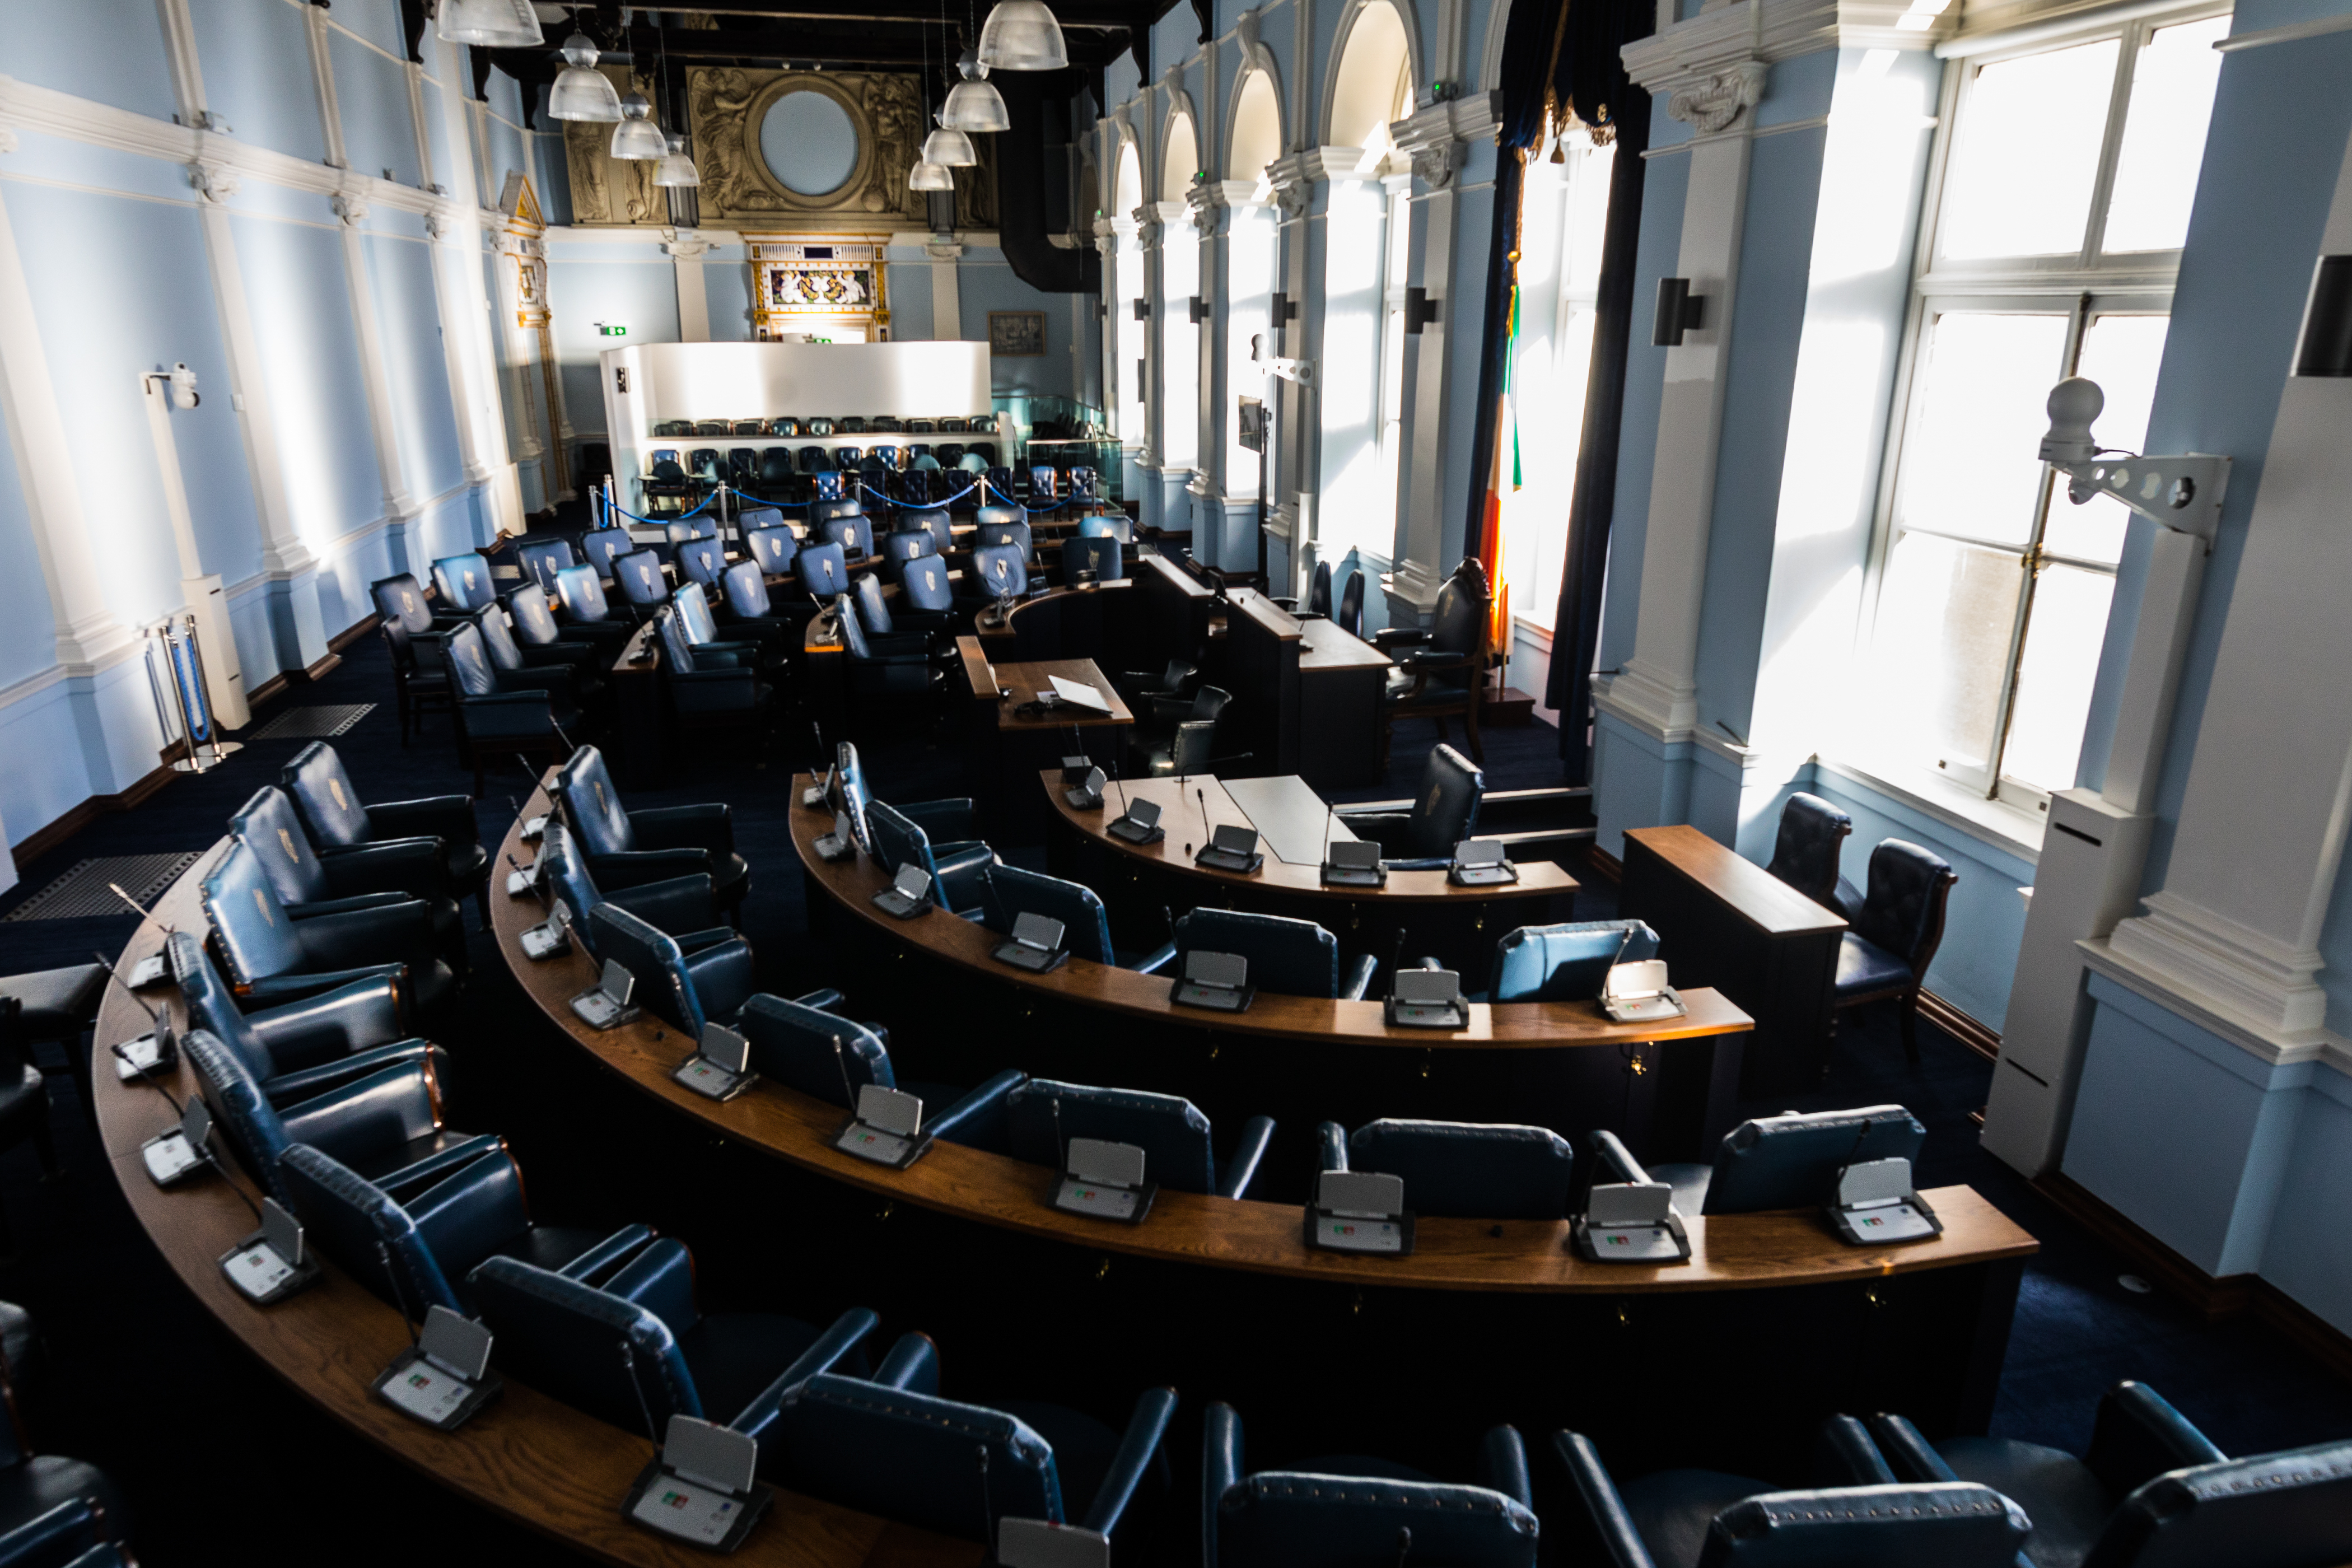 Seanad Chamber relocated to National Museum